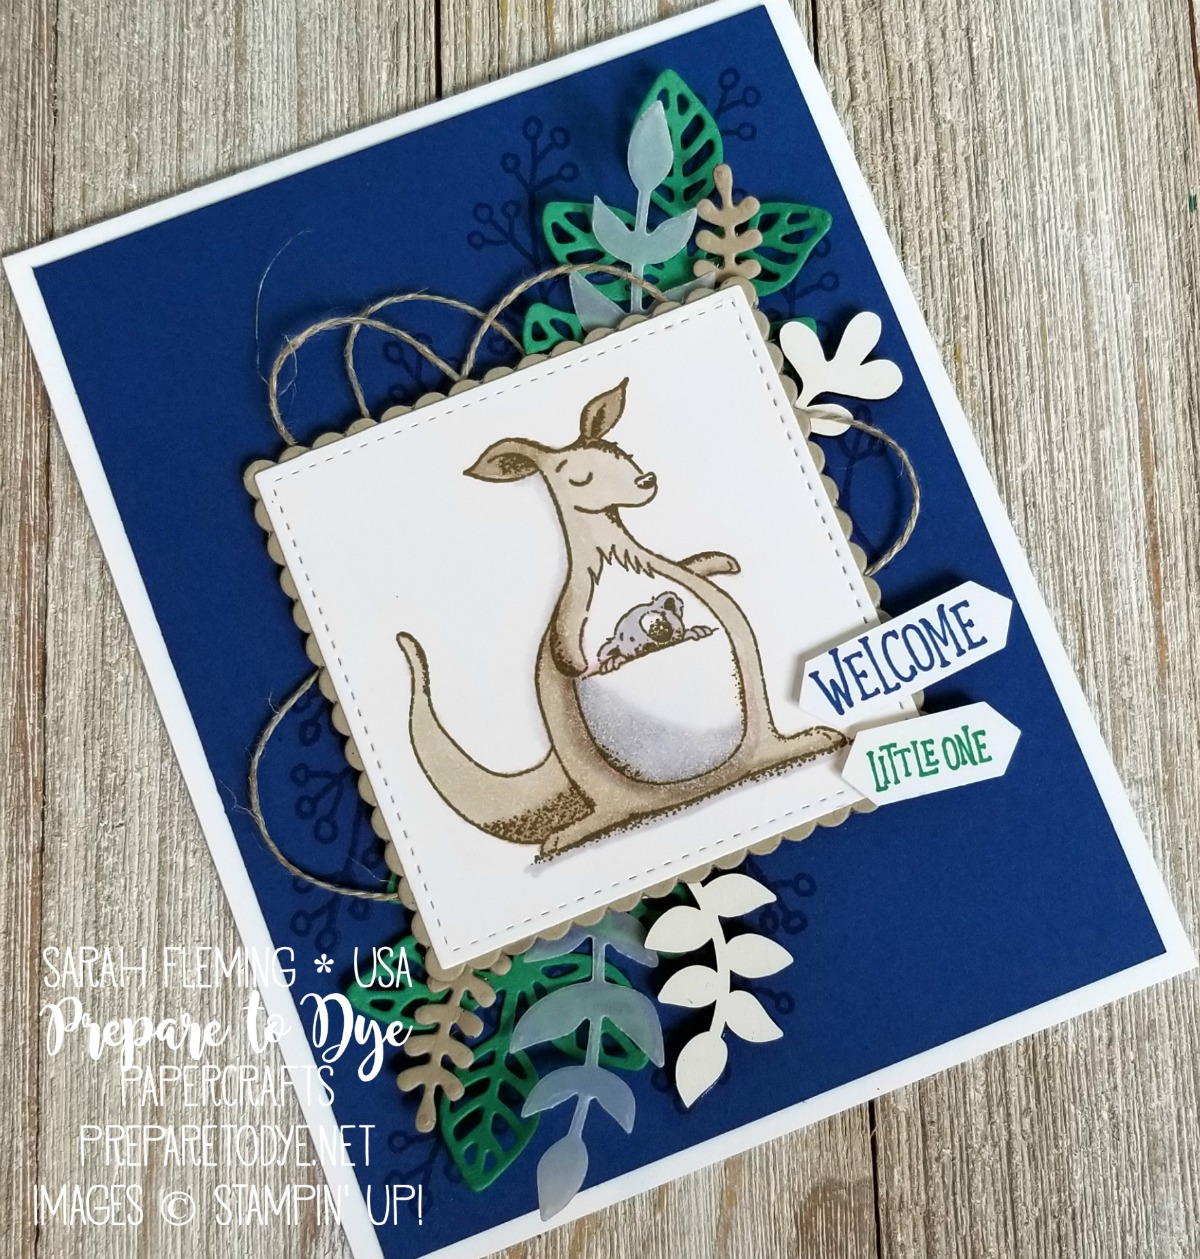 Stampin' Up! Animal Outing (coming soon), Love What You Do, Flourish Thinlits, Bouquet Bunch framelits, Stampin' Blends alcohol markers - Kylie's International Blog Highlights Top 10 Winners Blog Hop - Sarah Fleming - Prepare to Dye Papercrafts